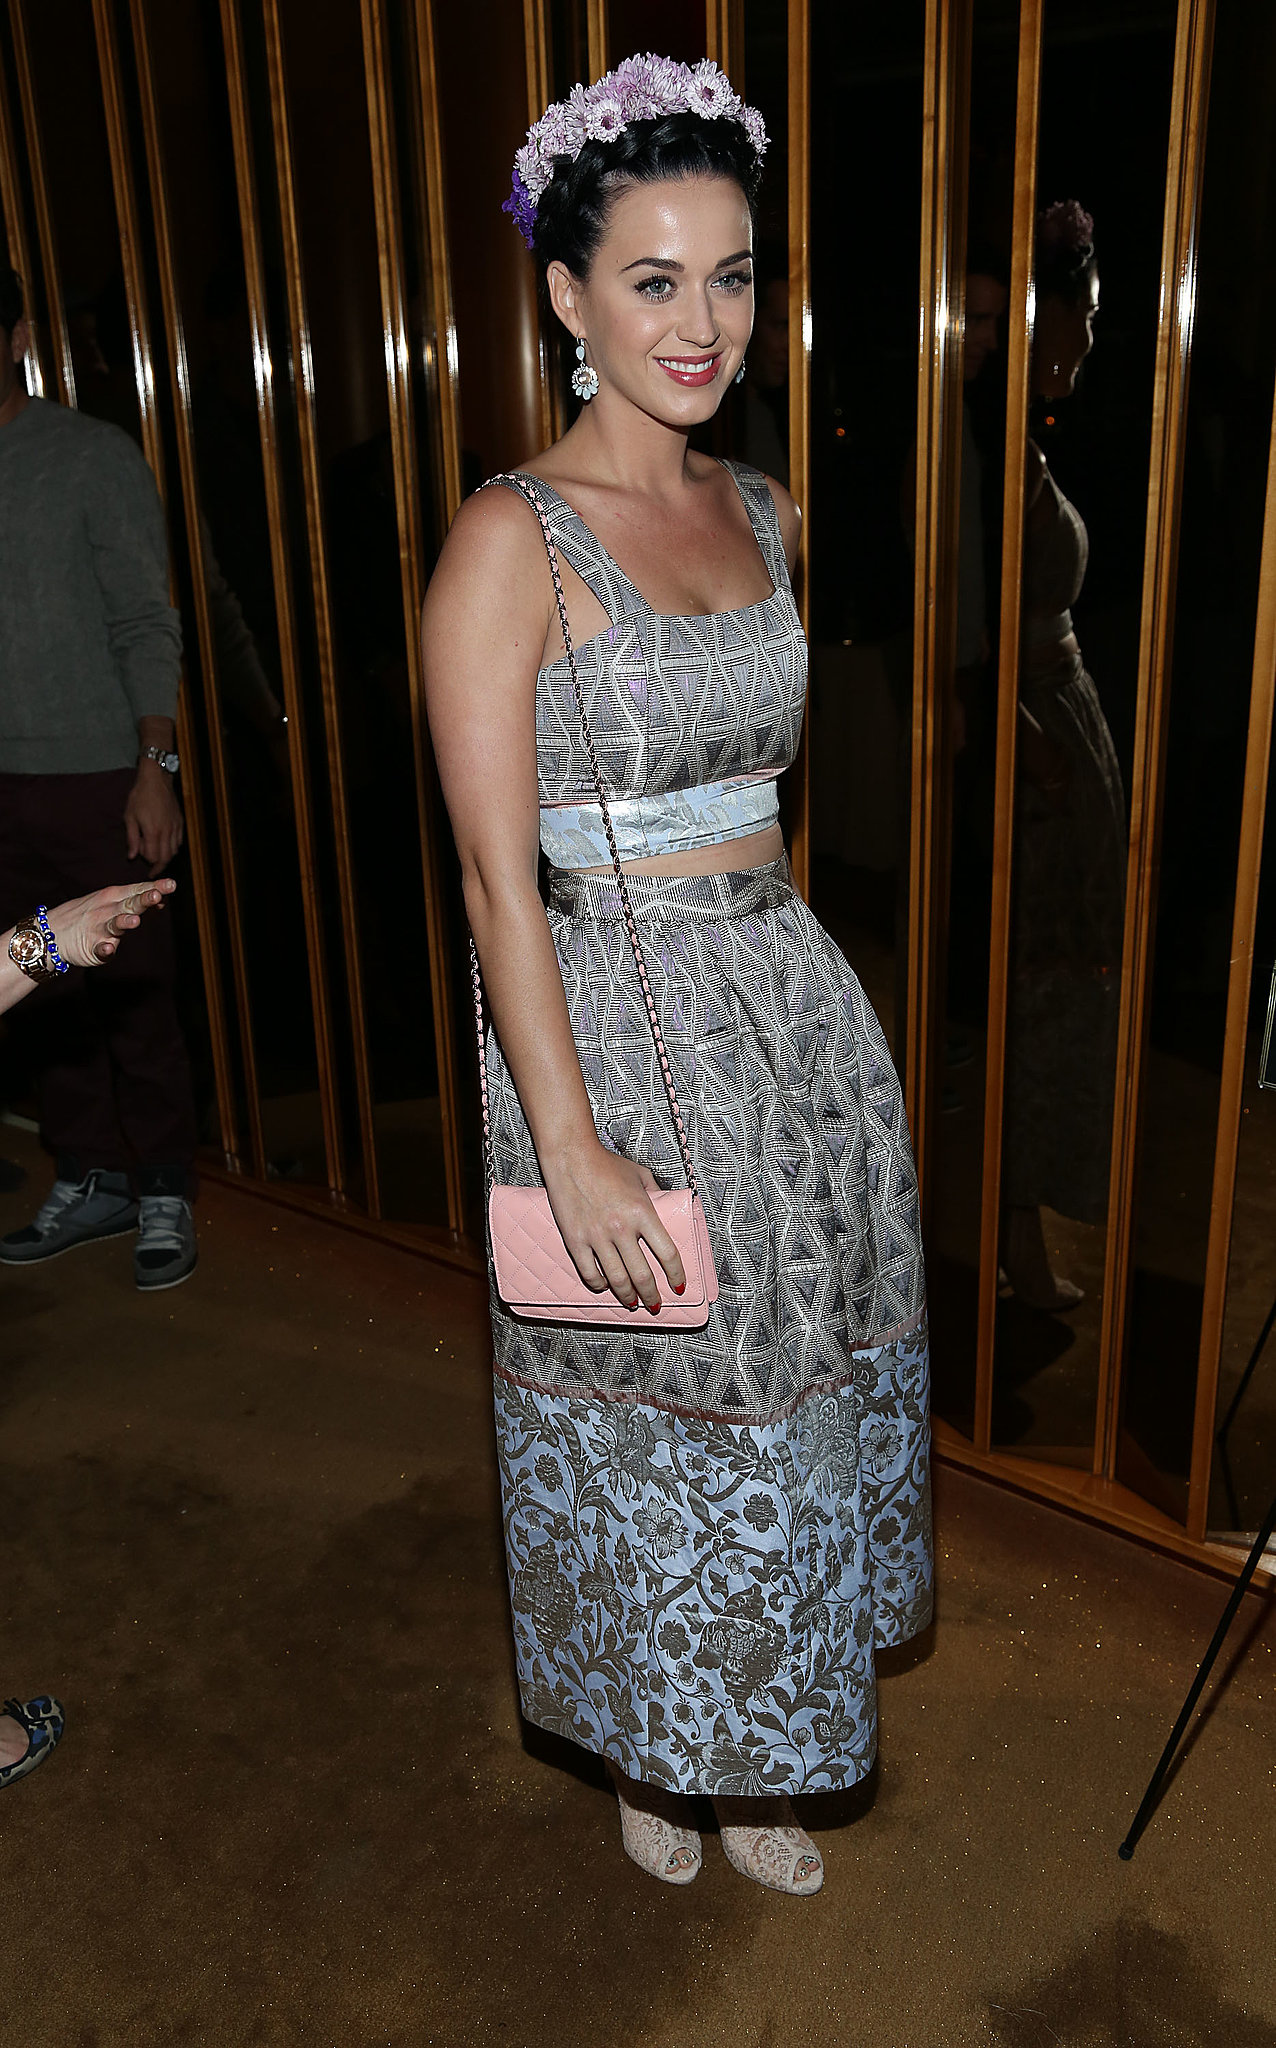 Katy Perry showed off her signature, girlie-meets-whimsical styling in a crop top and full skirt, complete with a floral headpiece and Lia Sophia jewels.